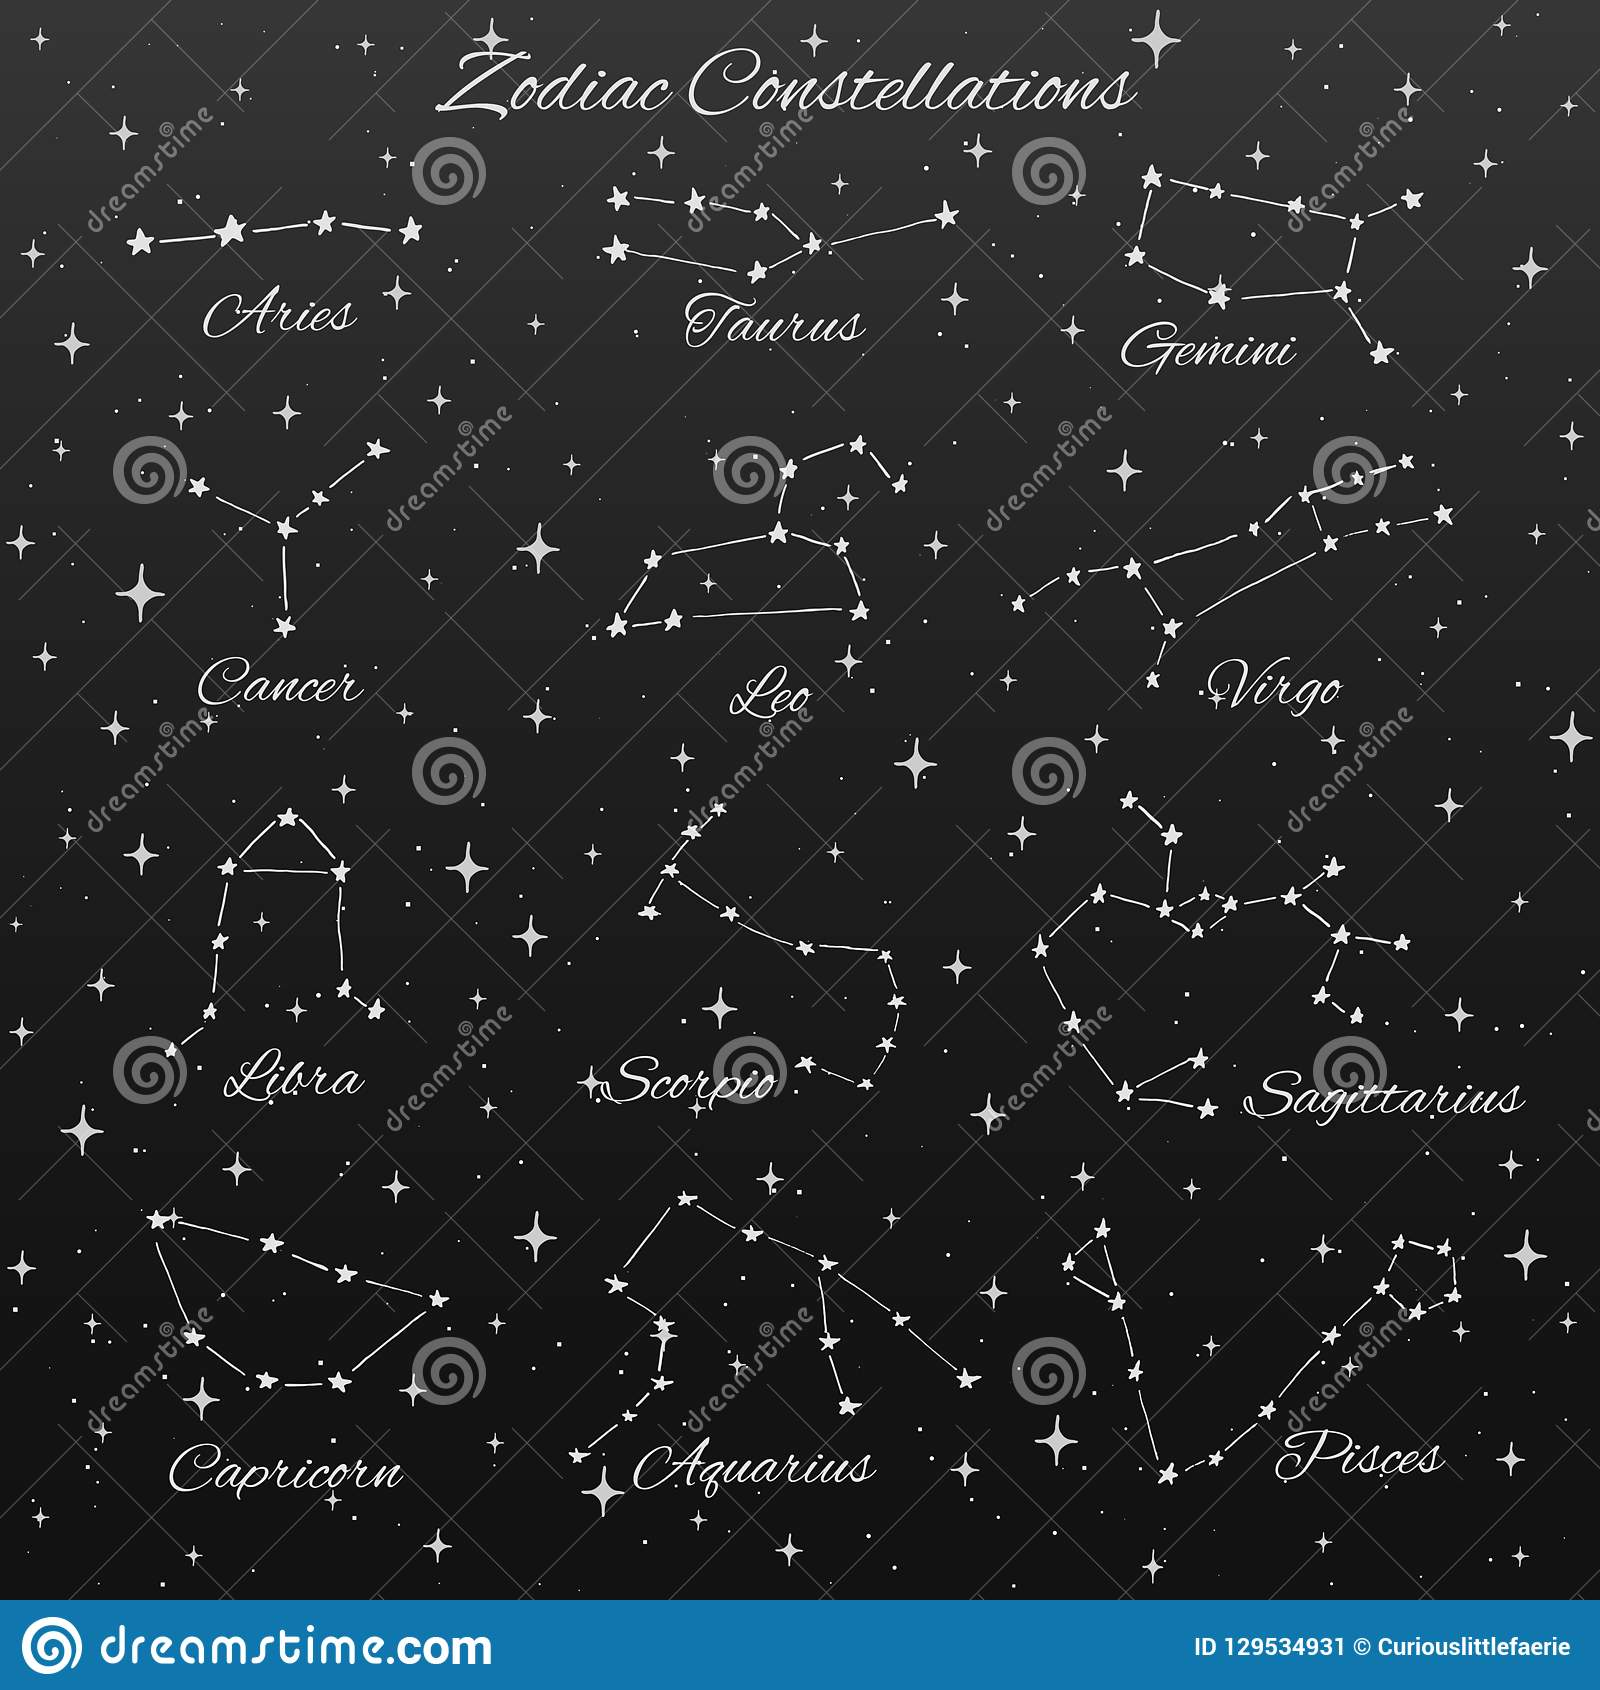 Hand Drawn Vector Zodiac Constellations Set Of 12 Signs